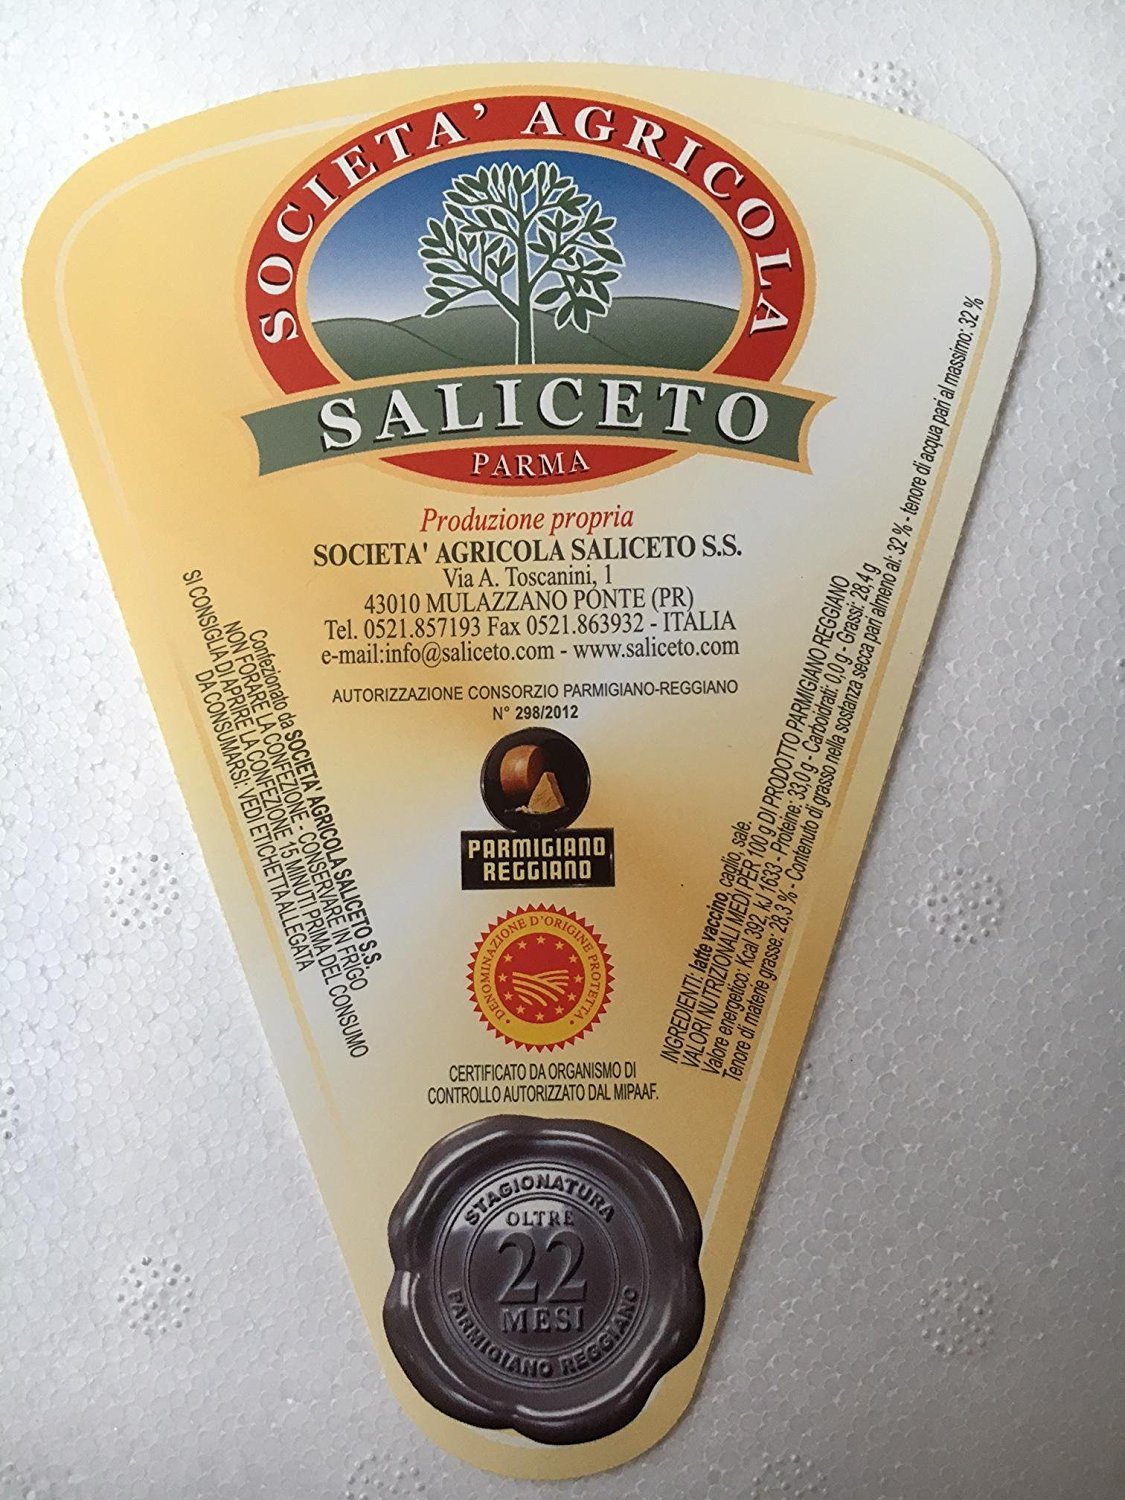 3 Pieces PARMIGIANO REGGIANO PDO from hill, each 3 lbs, qual.''Extra'' vacuum packed, (total = 9 lbs) seasoned 24 months by Parmigiano Reggiano PDO (Image #1)